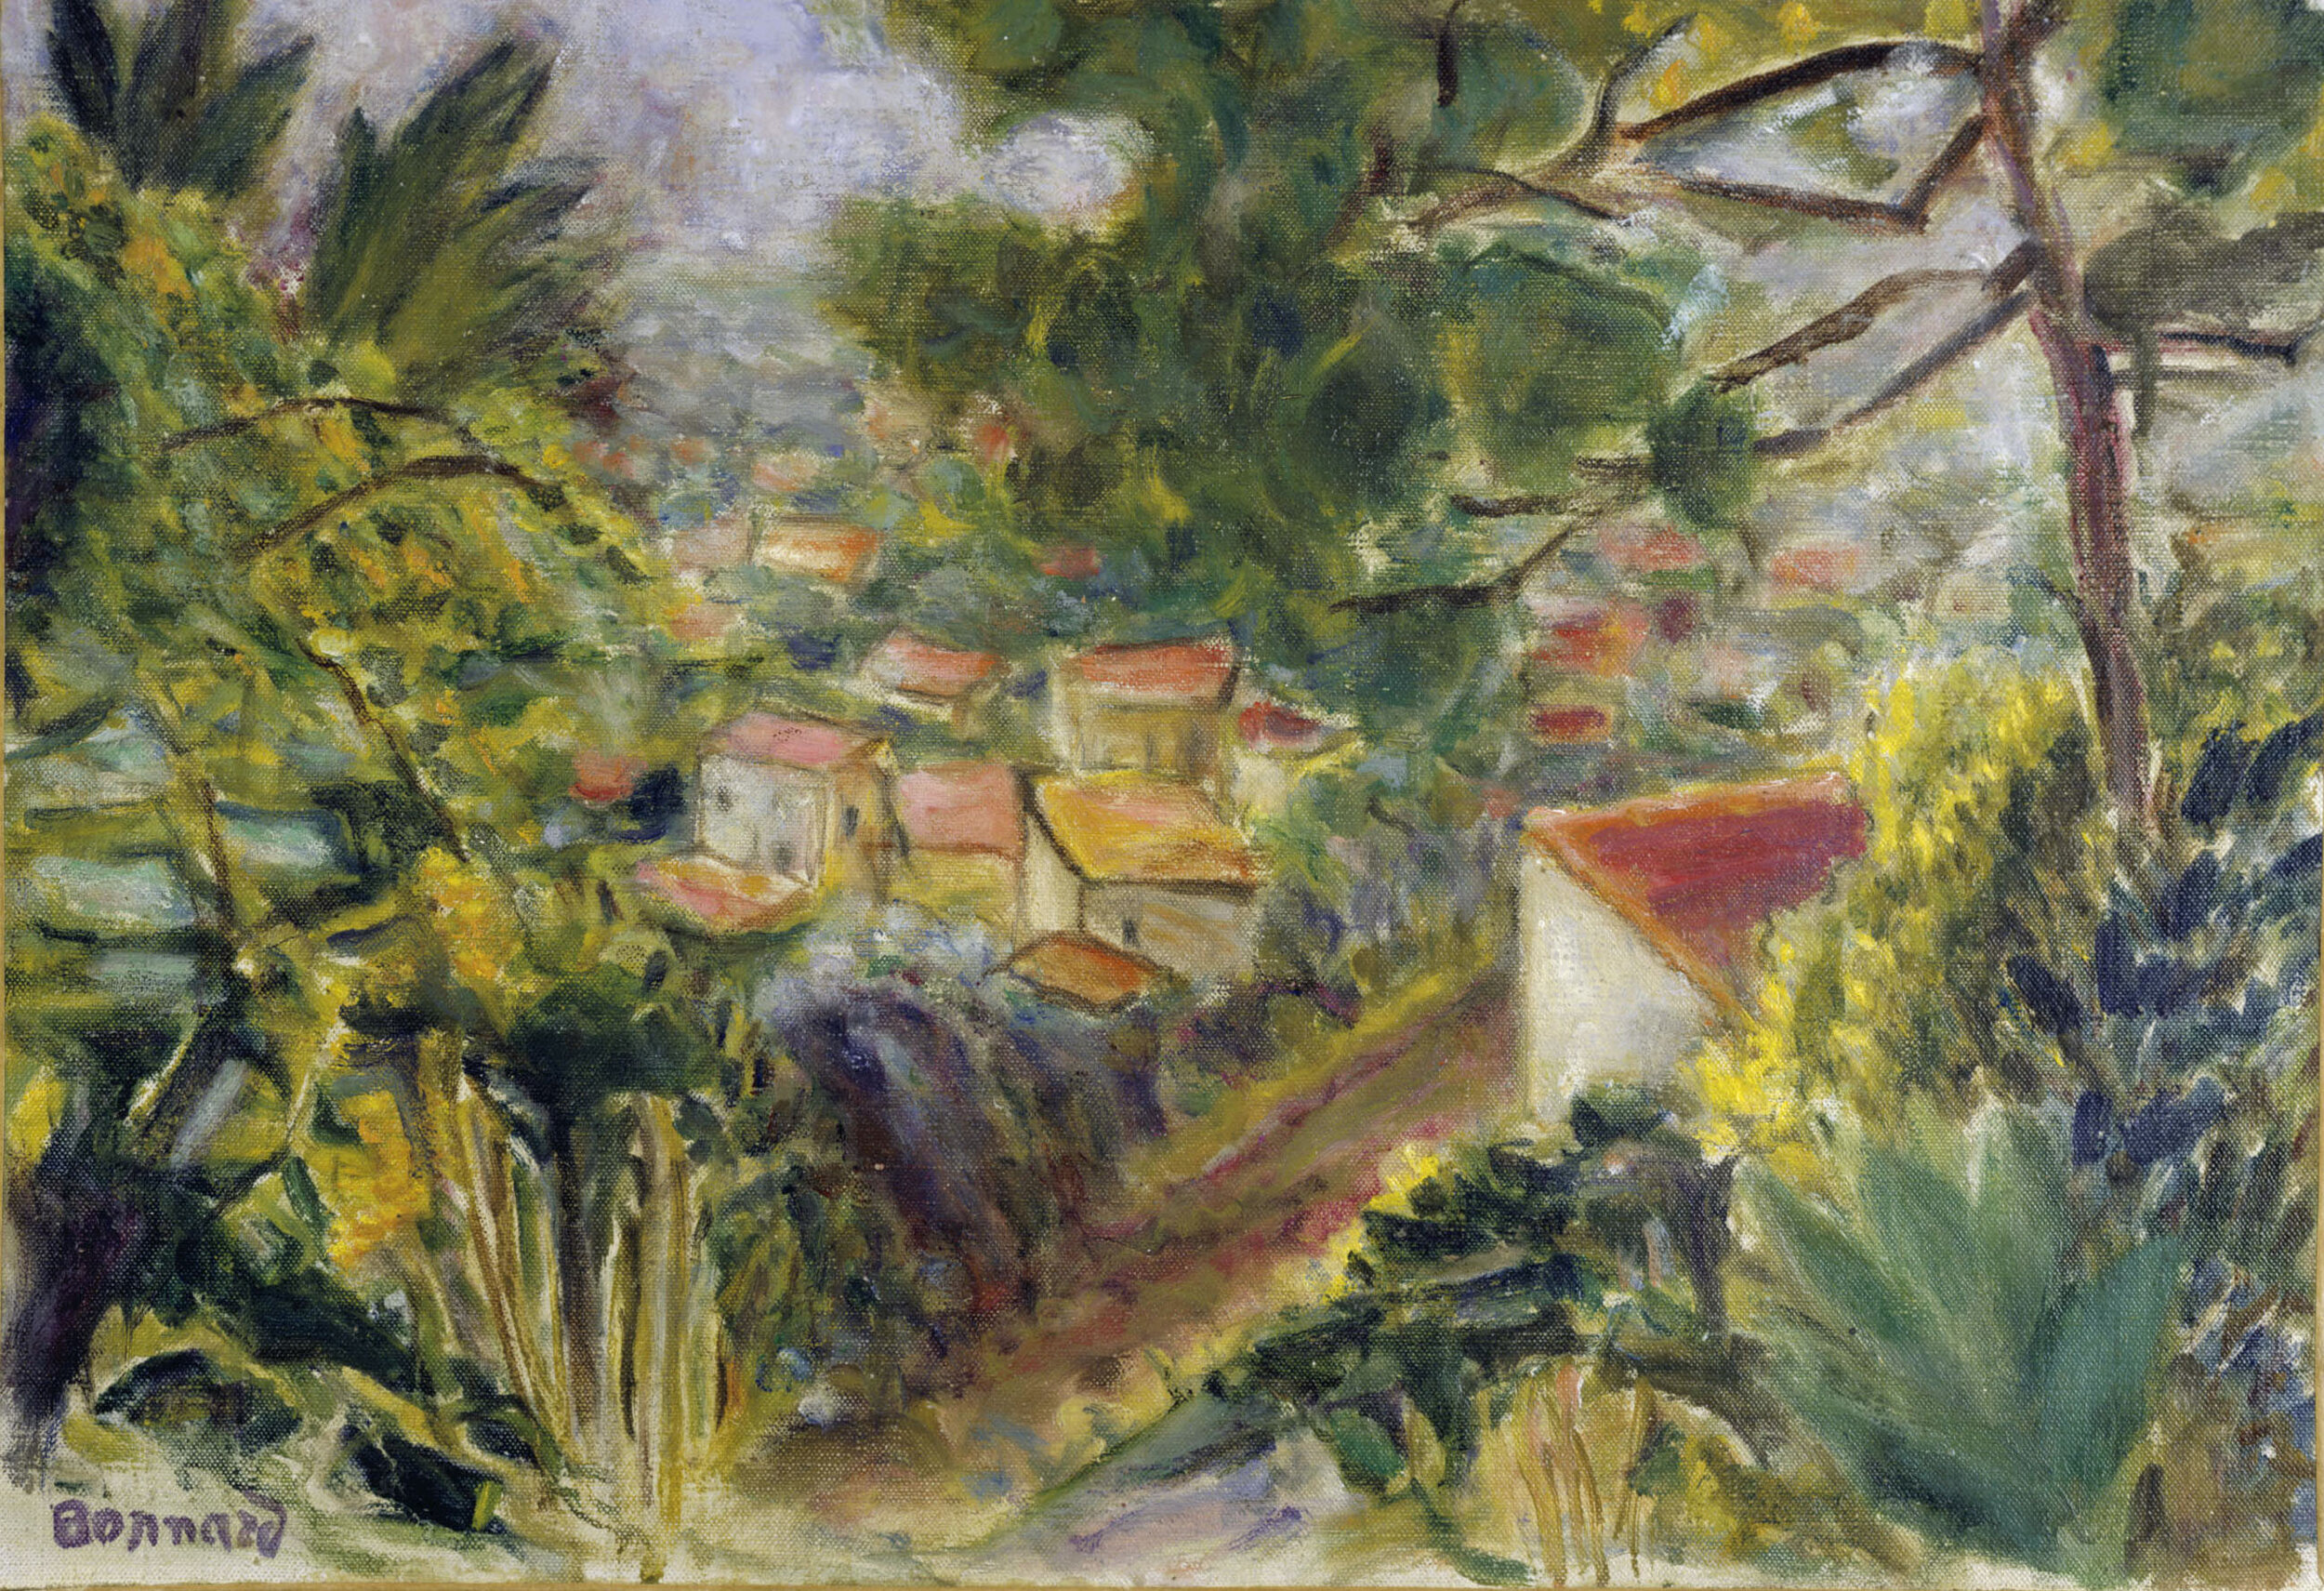 PIERRE BONNARD  Le Cannet , 1941  Oil on canvas  14 1/8 x 20 1/2 inches (36 x 52 cm) Signed lower left